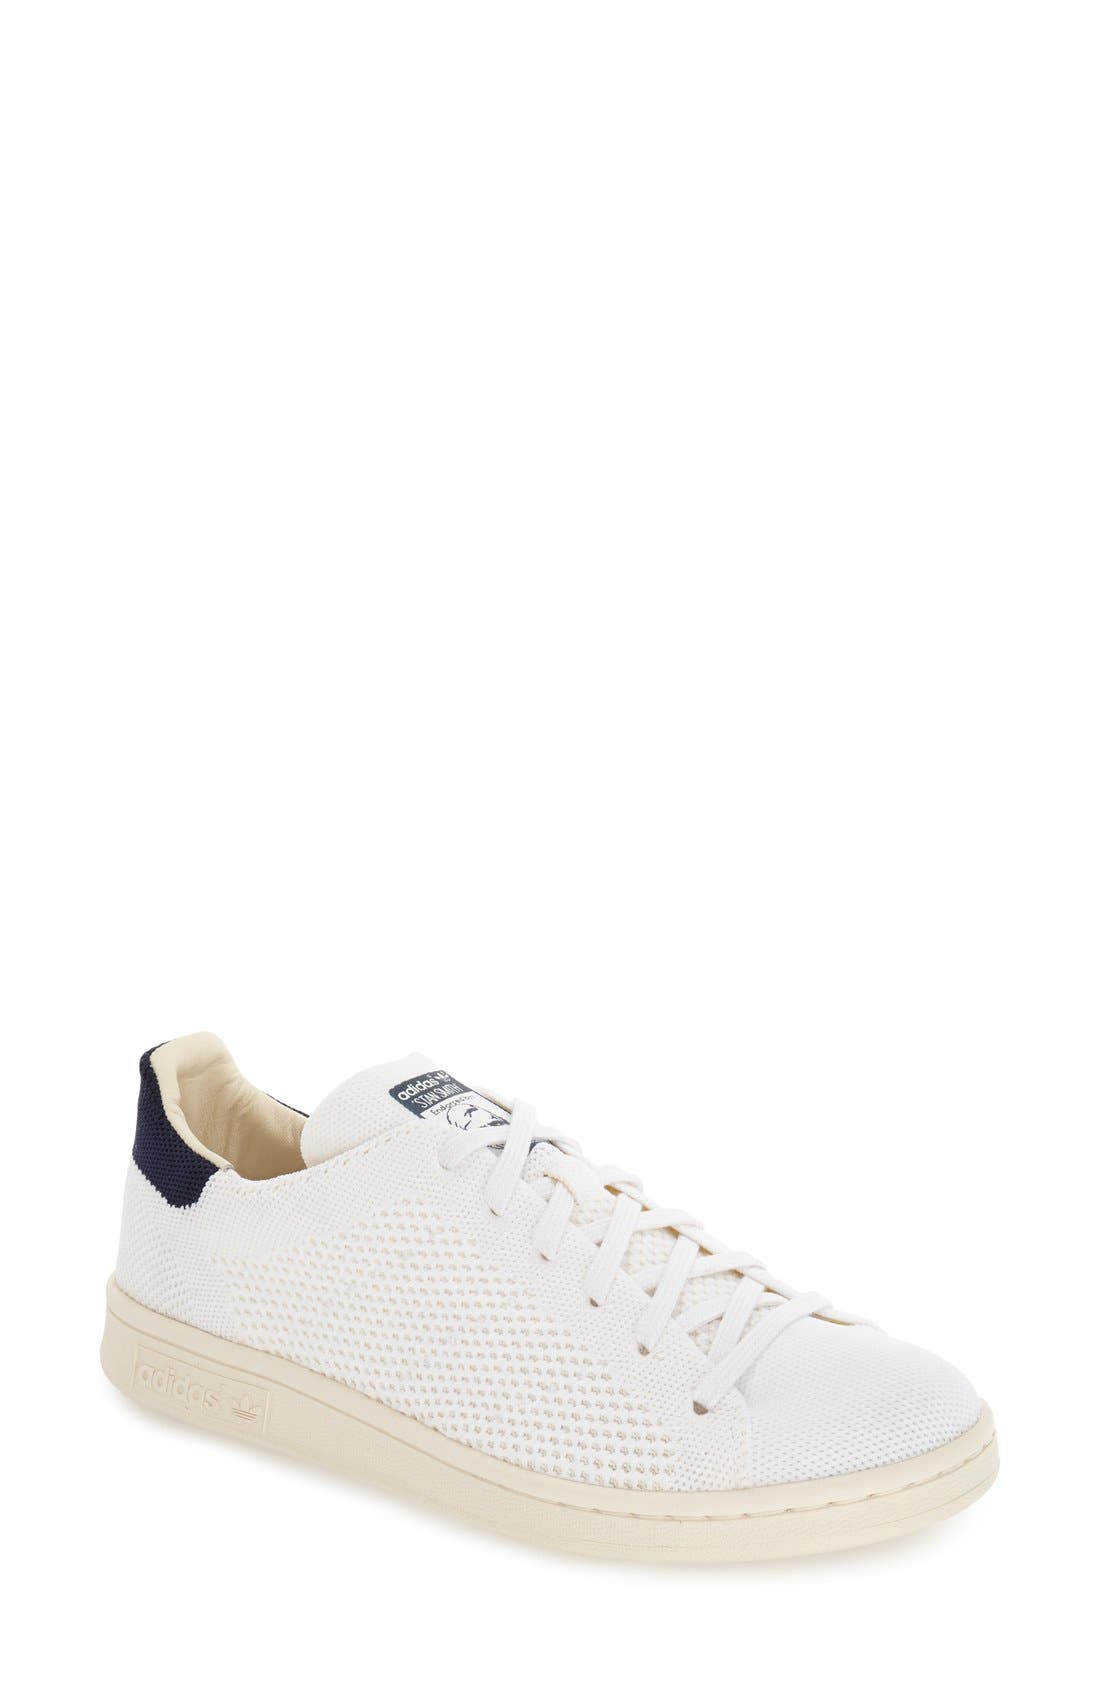 Alternate Image 1 Selected - adidas 'Stan Smith' Primeknit Woven Sneaker (Women)